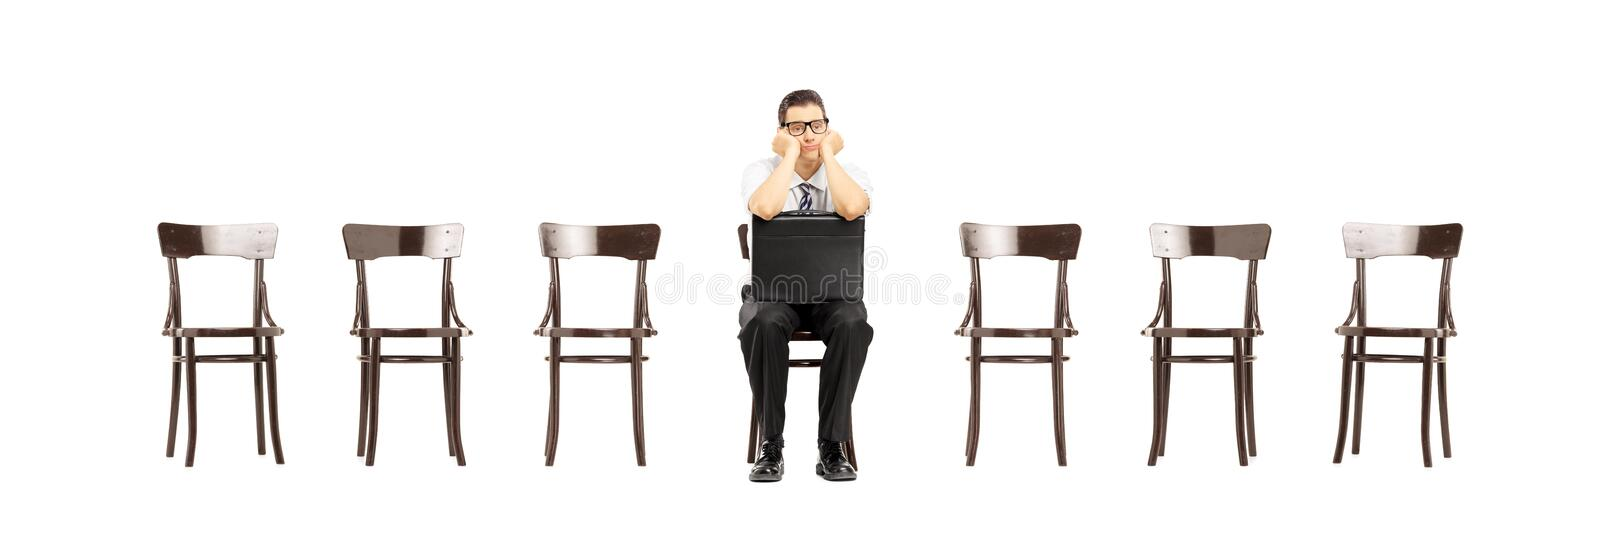 Bored man with suitcase sitting on a chair waiting for job inter stock images